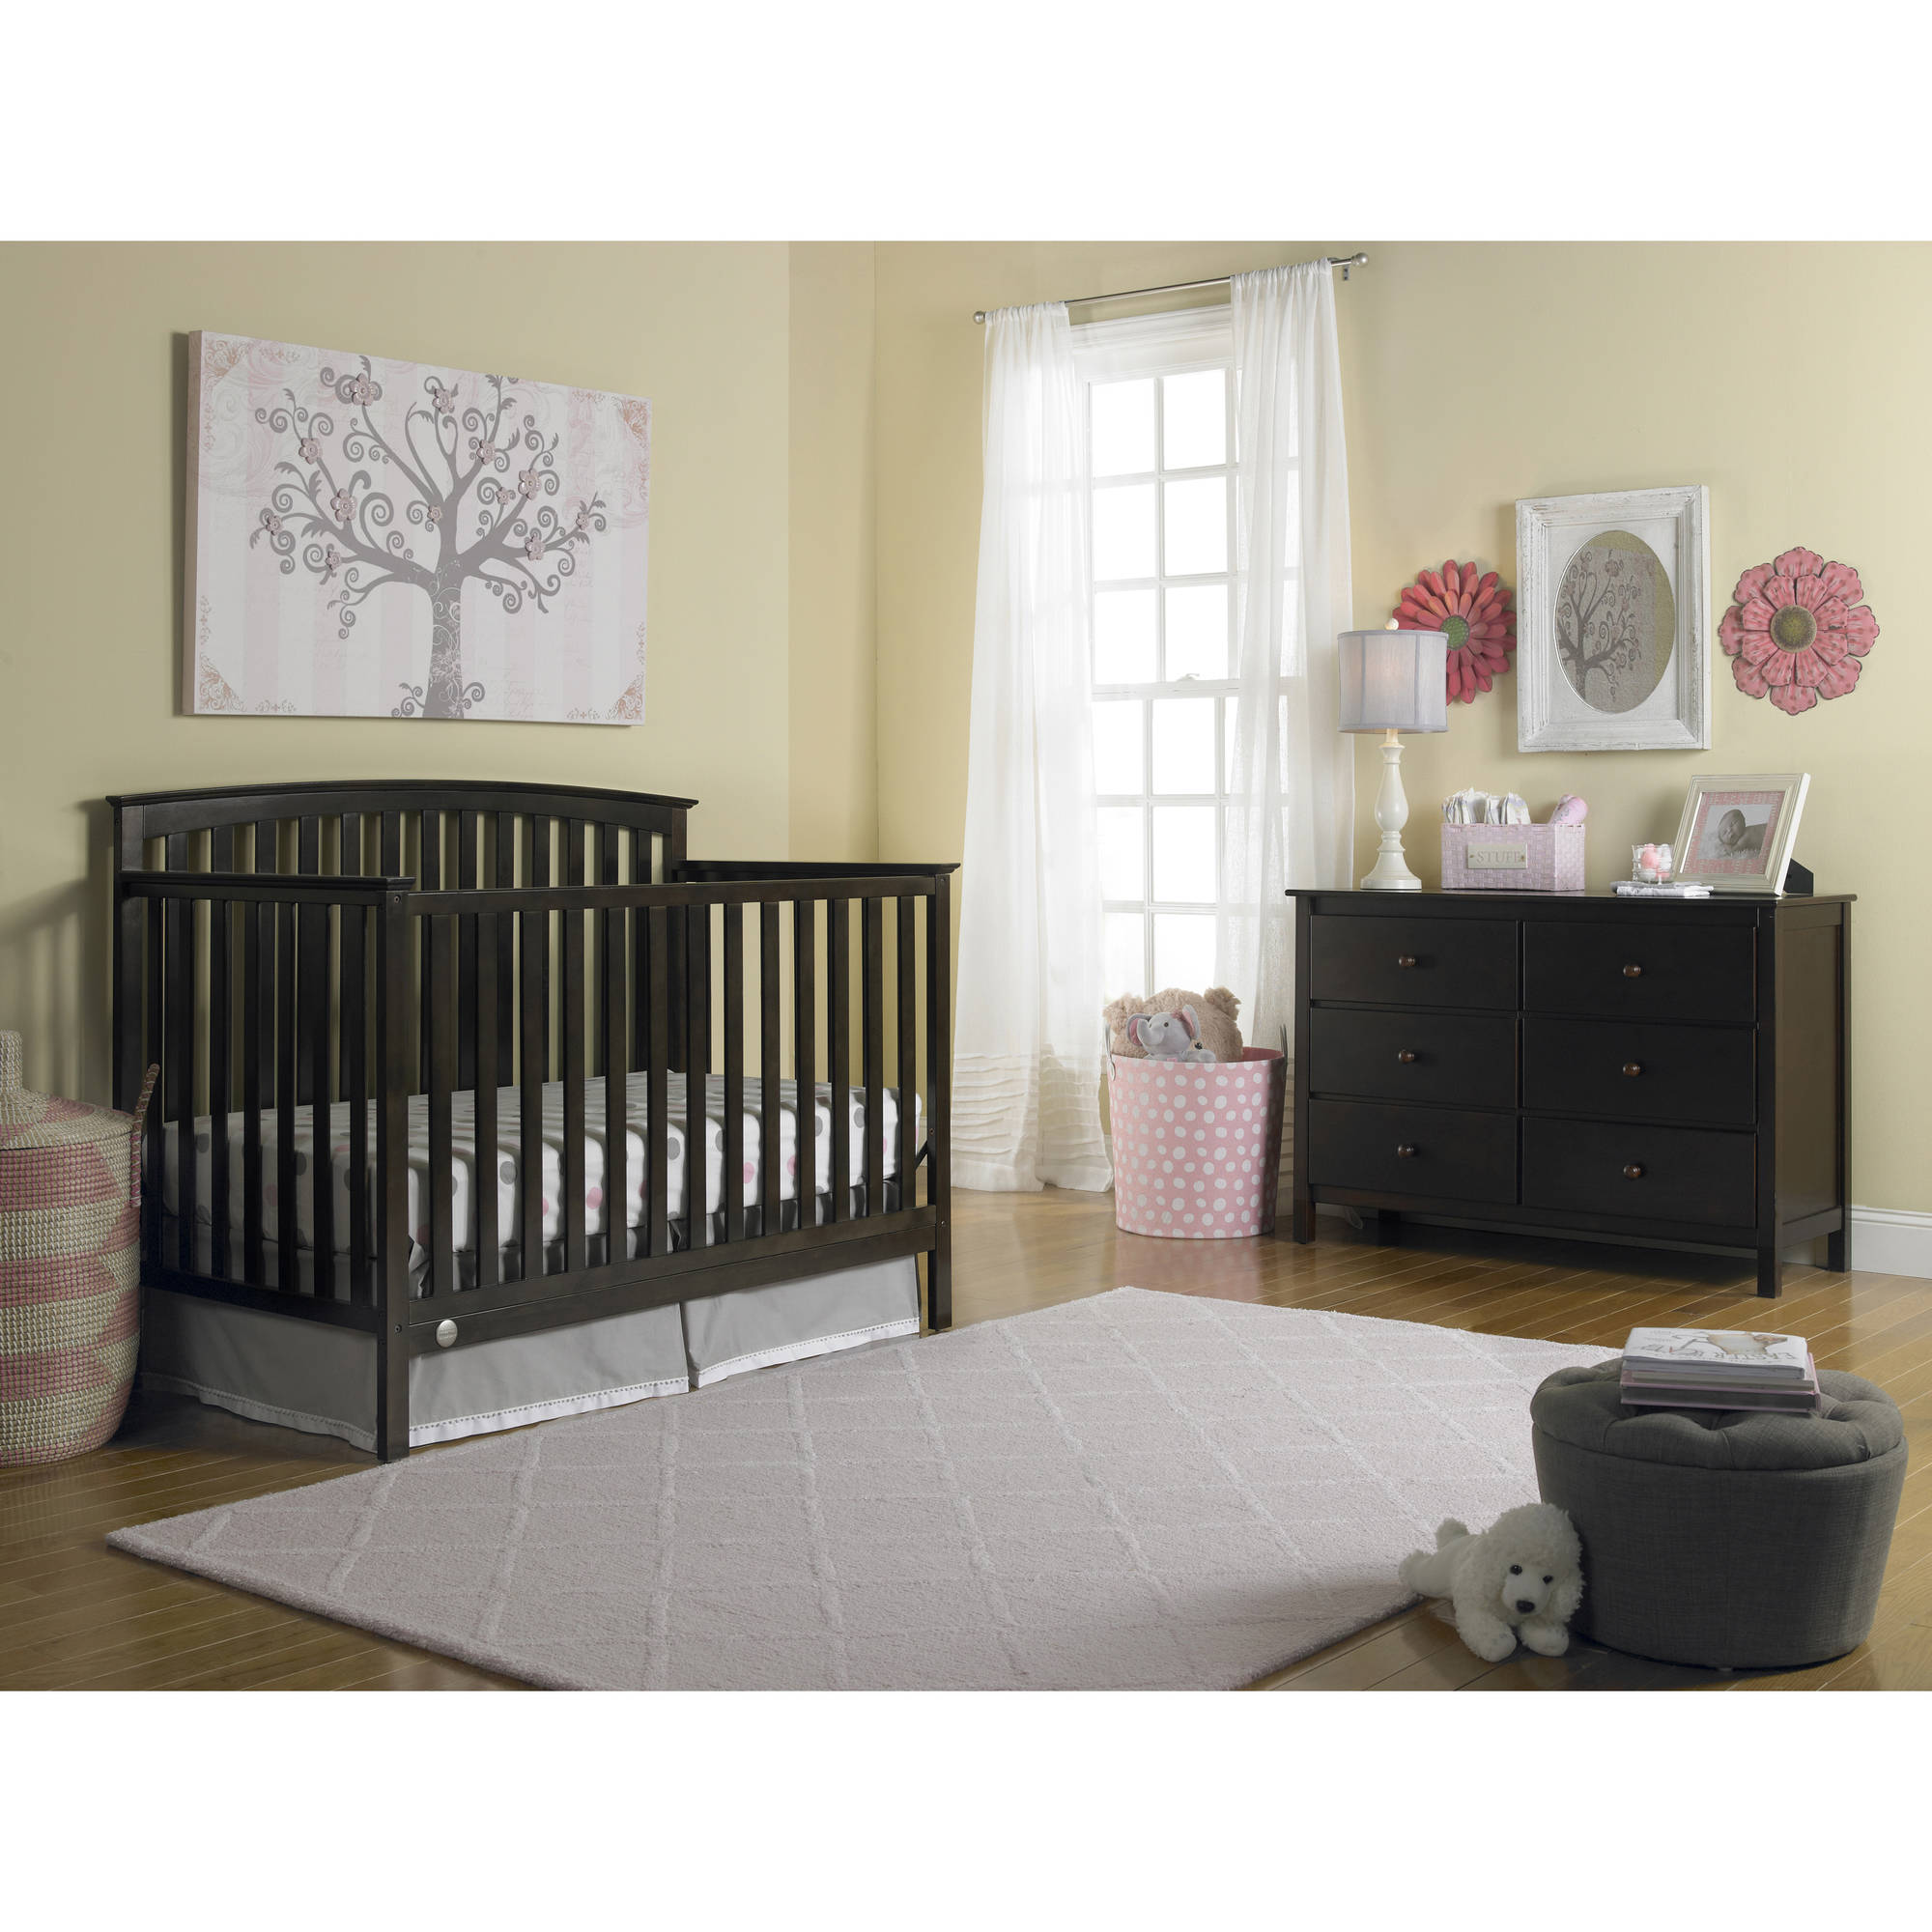 Crib price range - Fisher Price Jesse 4 In 1 Convertible Crib Choose Your Finish Walmart Com